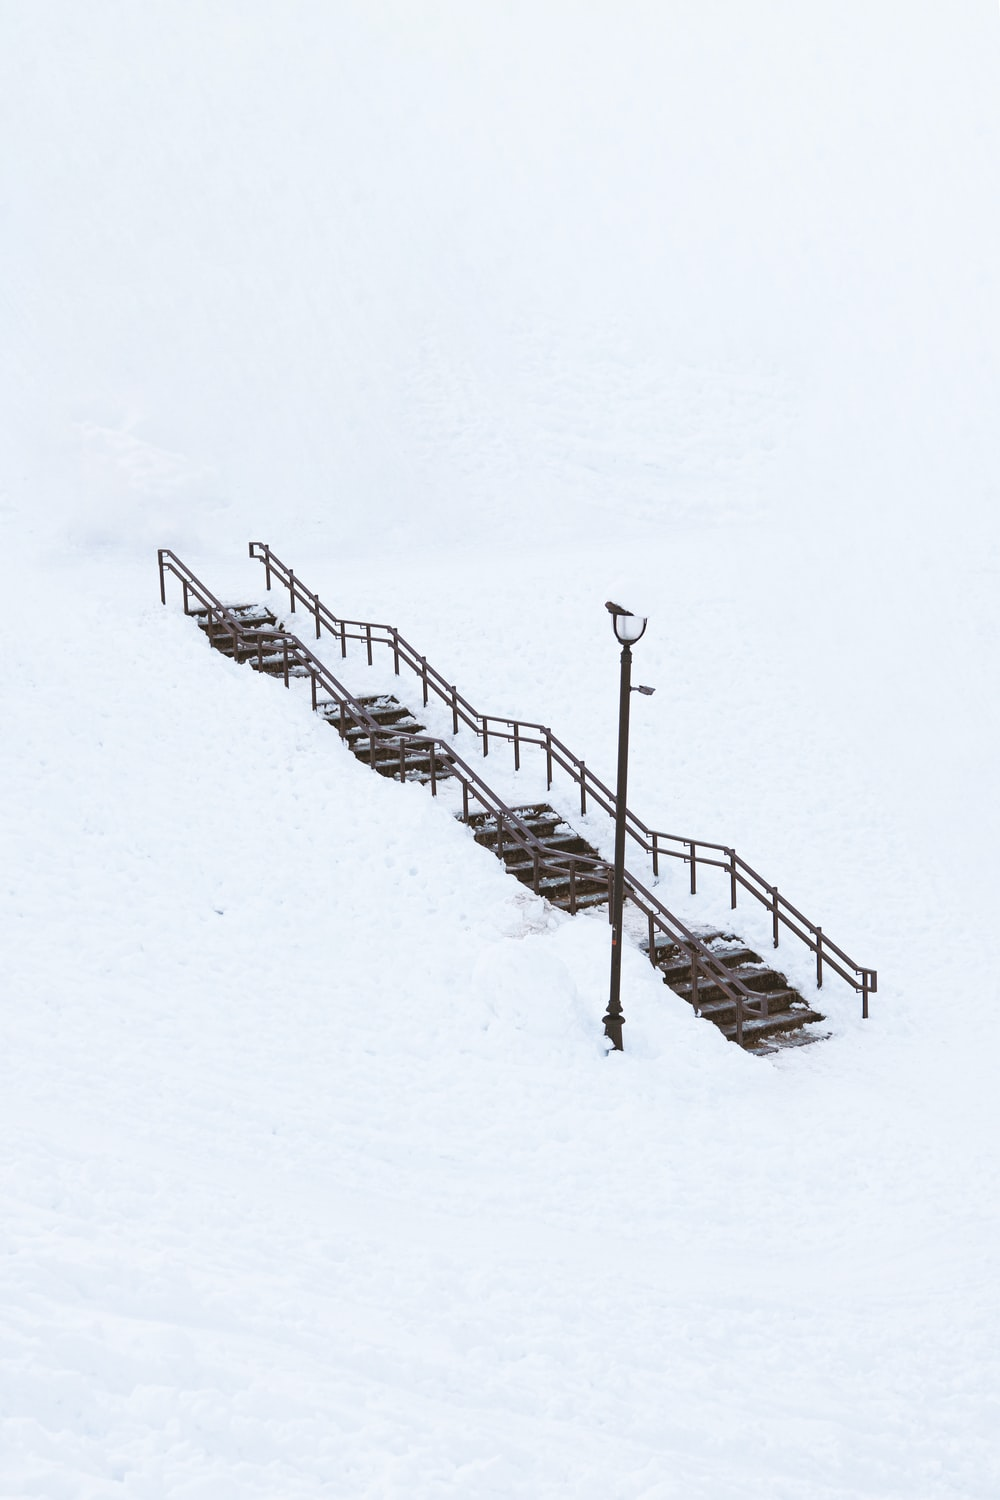 black metal ladder on snow covered ground